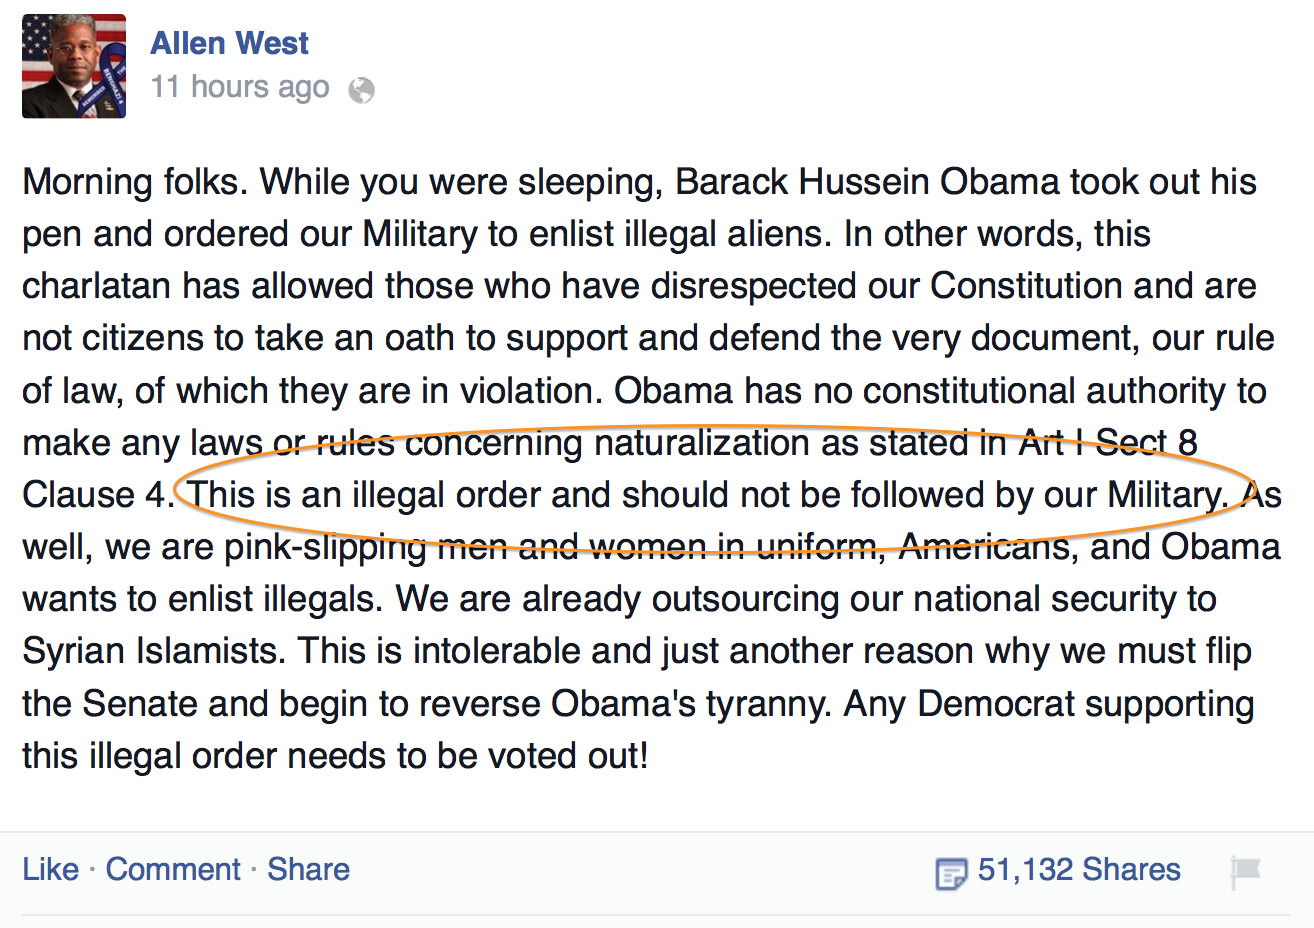 Allen_West_FB_post.png